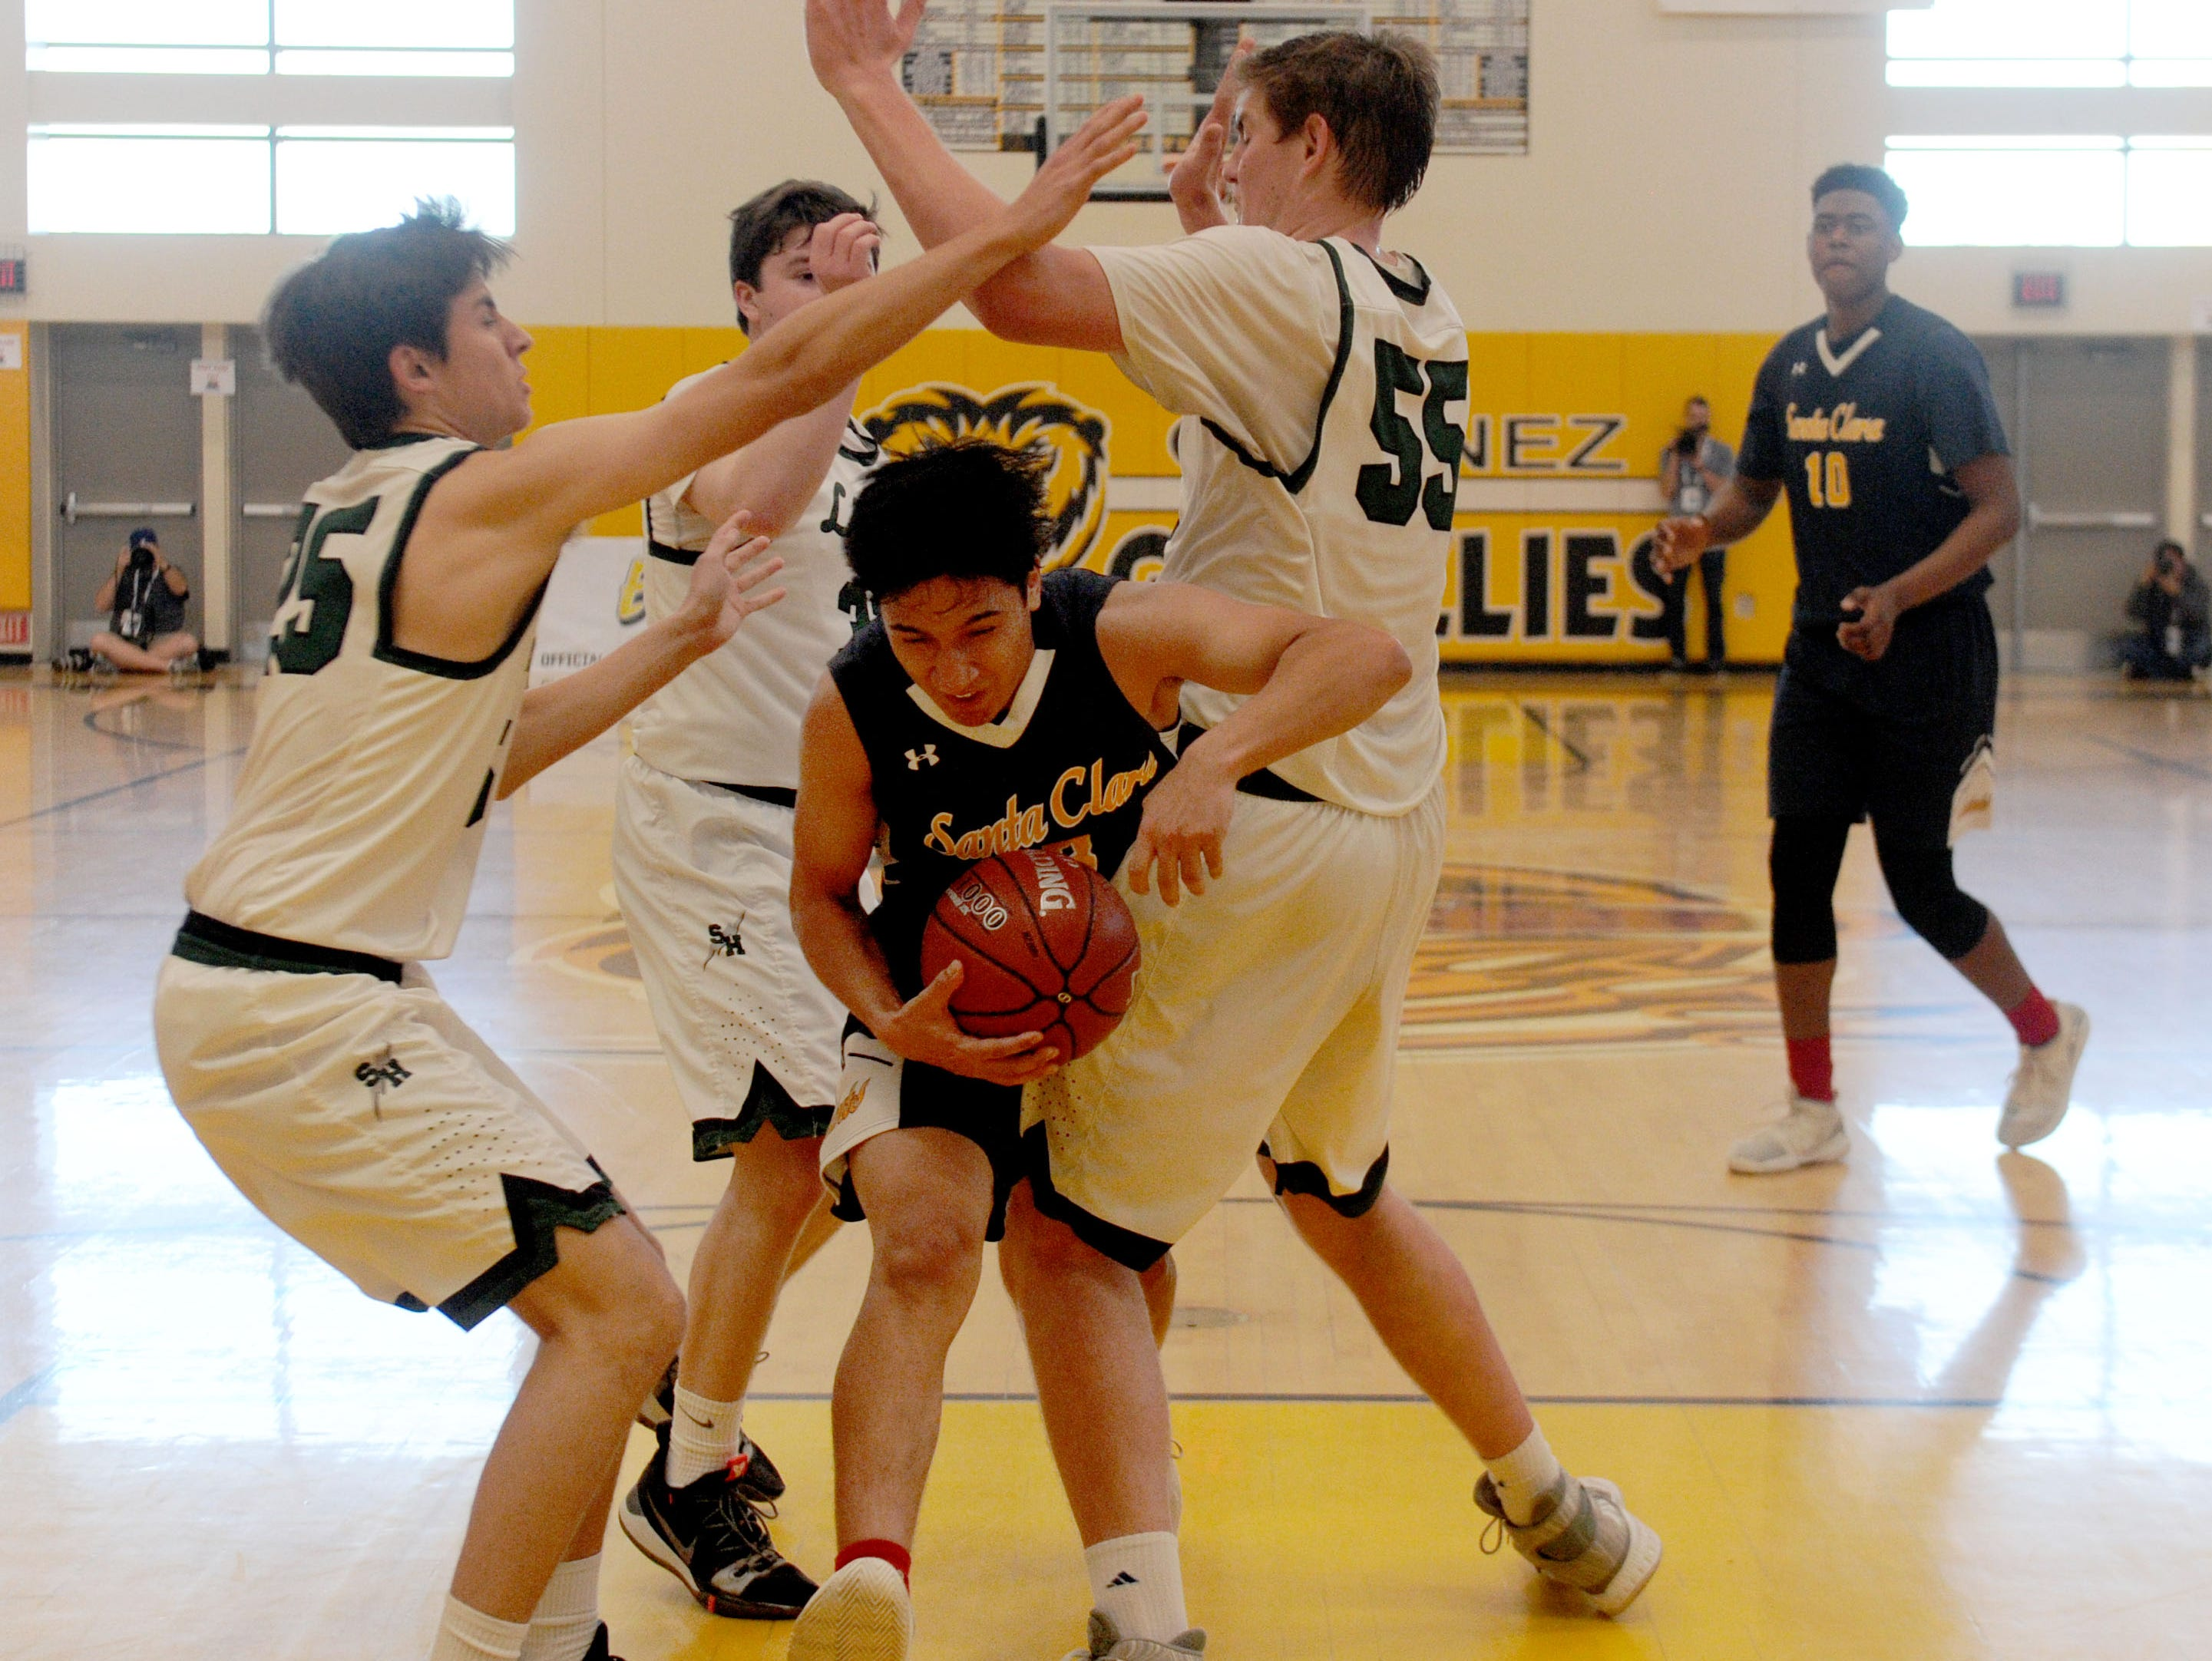 Santa Clara's Felix Ramos tries to squeeze through three Sage Hill defenders during the CIF-SS Division 5AA boys basketball championship game Saturday at Godinez High in Santa Ana. The Saints won, 68-52.